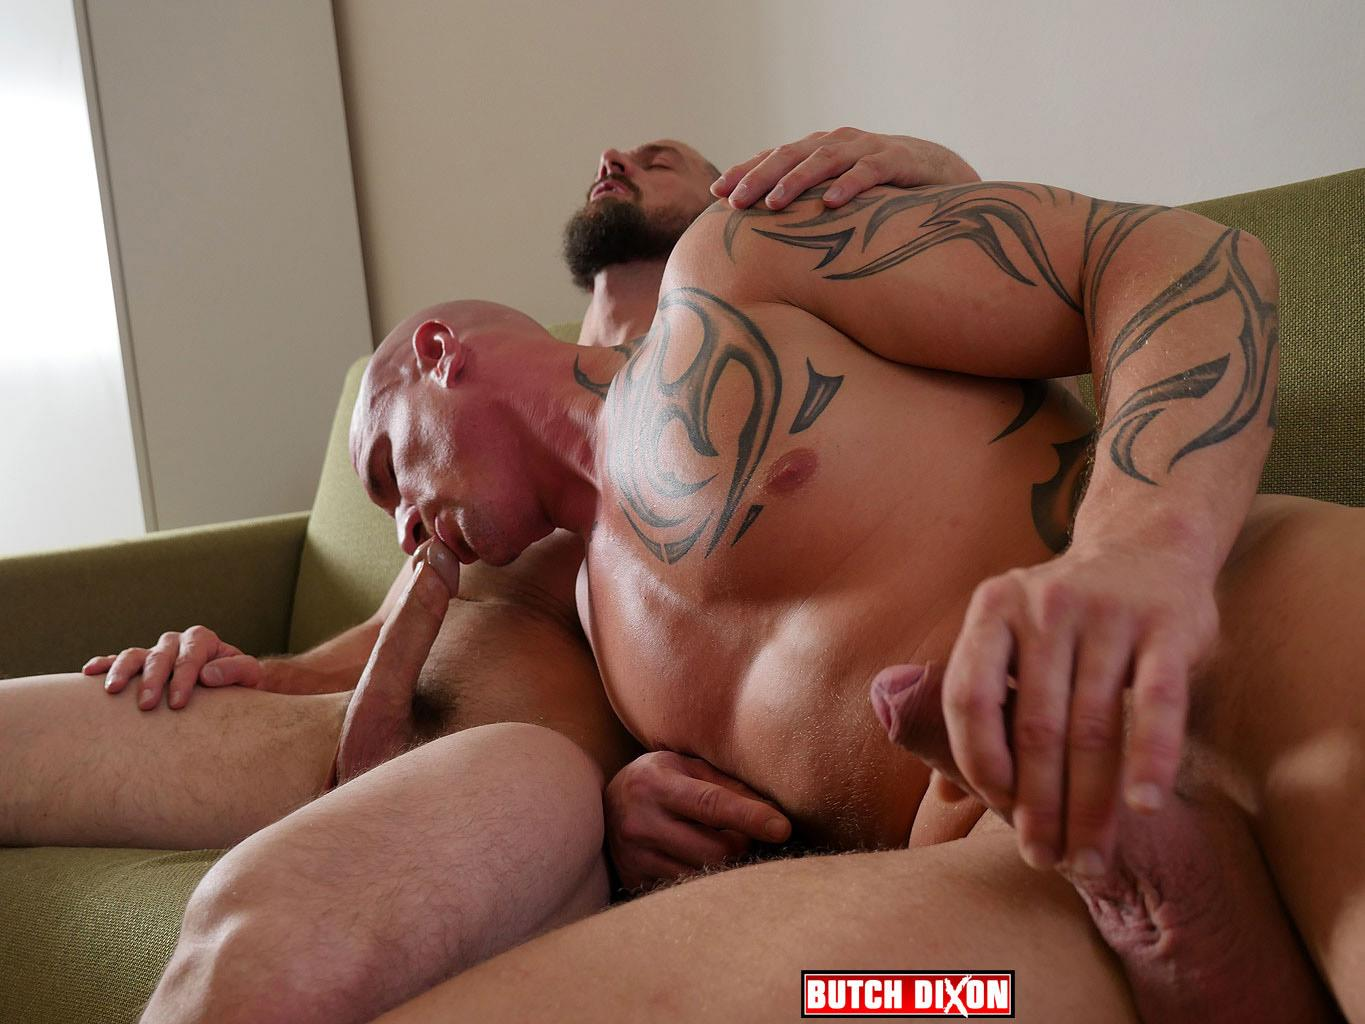 Butch Dixon Erik Lenn and Mike Bourne Masculine Guys Fucking Bareback Amateur Gay Porn 08